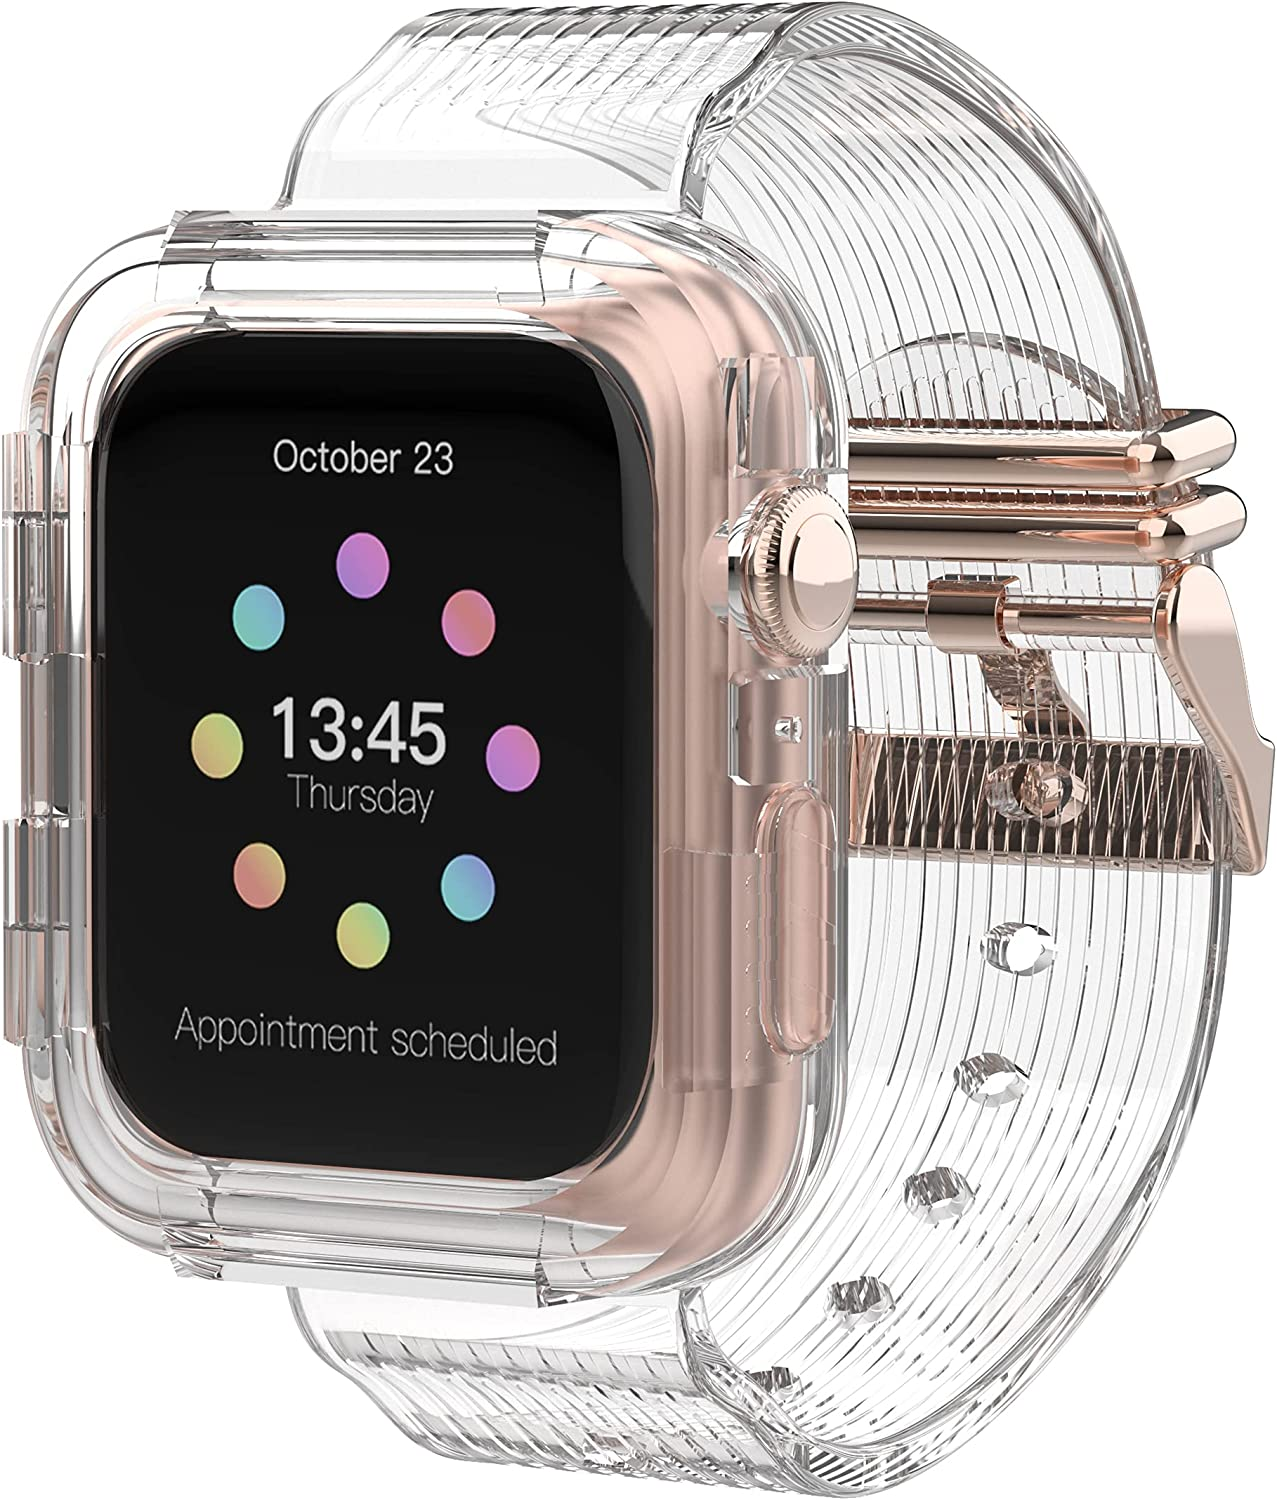 DamonLight Clear Bands for Apple Watch with Rose Gold Buckle Bumper Case, Men Bands for iWatch Series 6 5 4 3 2 1 SE, Sport Military Protective Cases Protector Shockproof